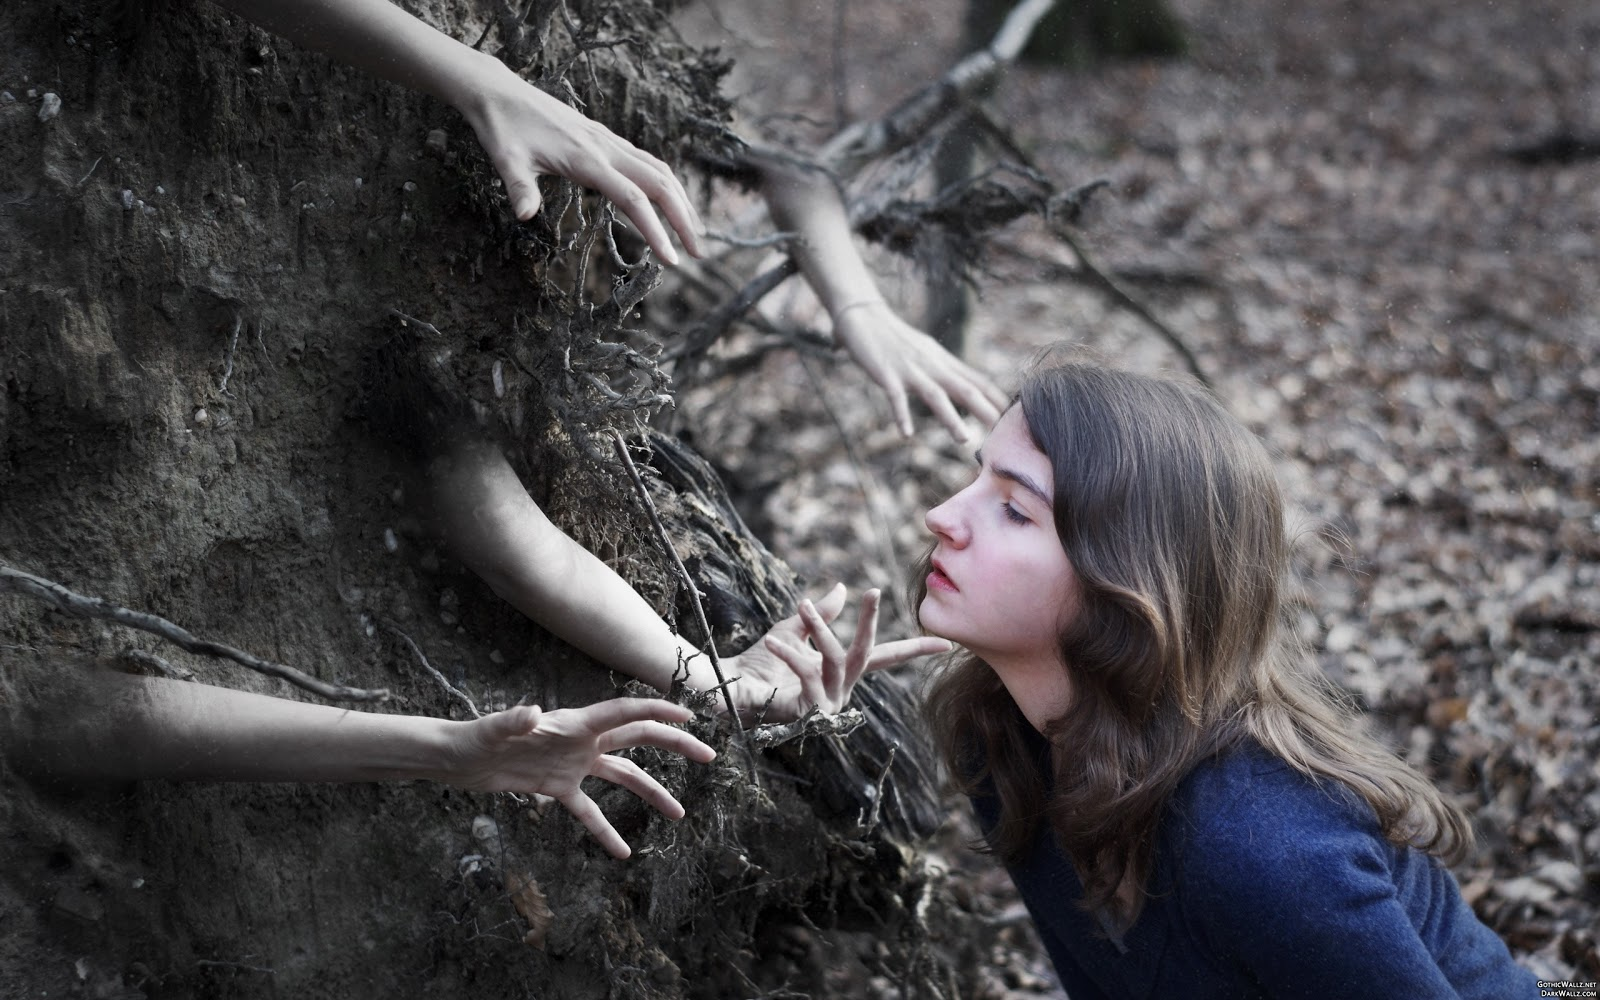 Graveyard hands grab pretty girl | Dark Gothic Wallpaper Download